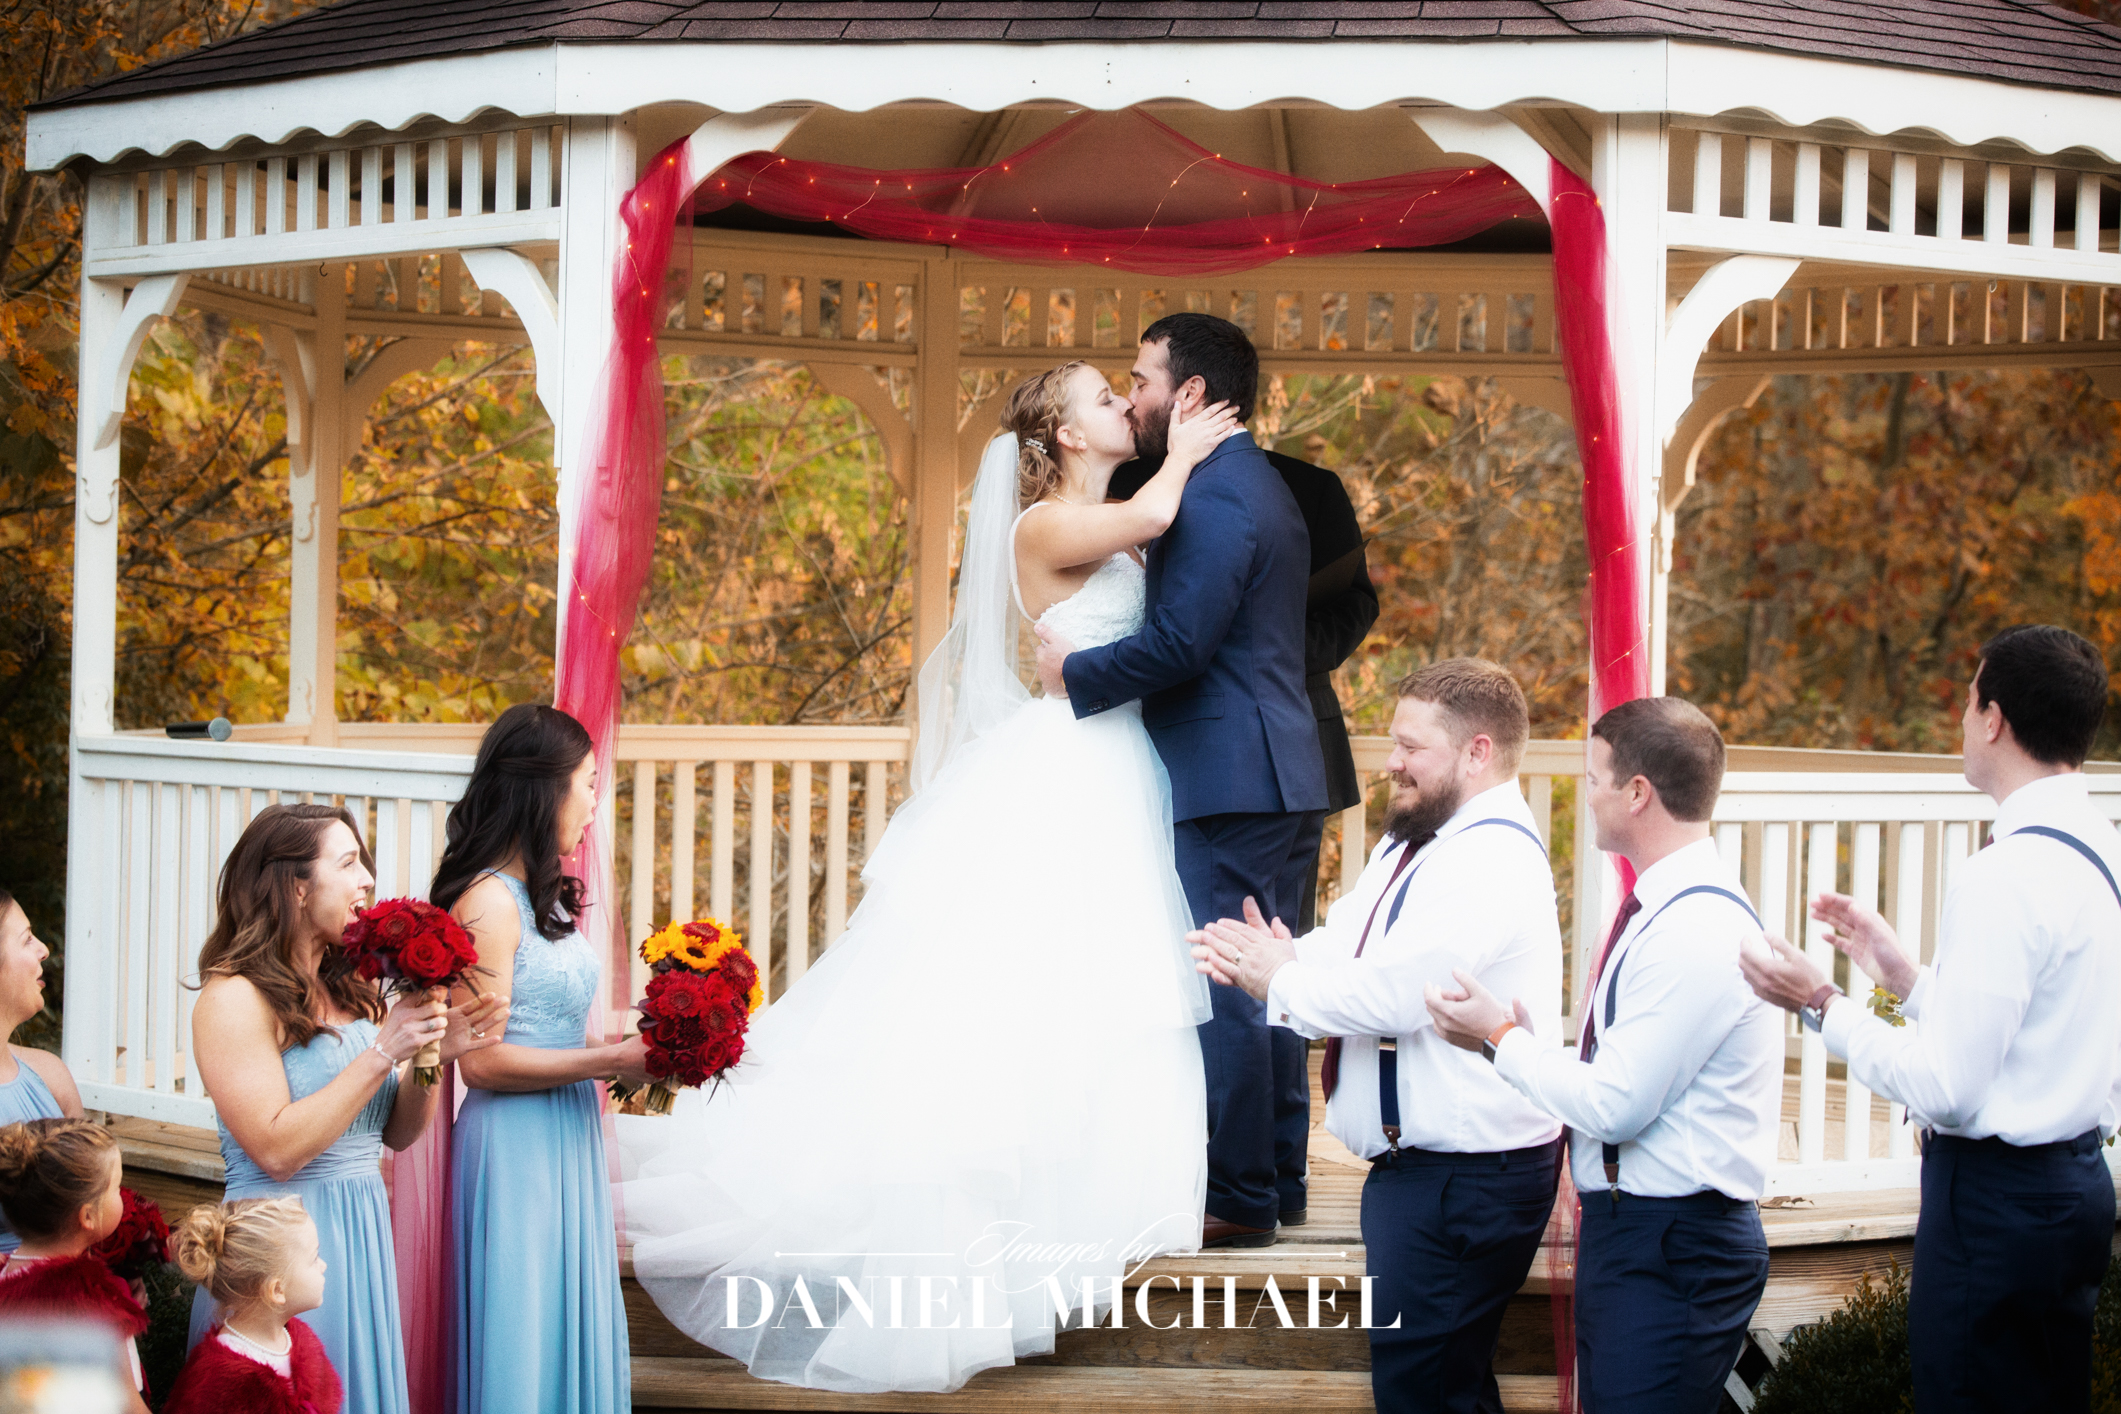 Noryln Manor Wedding Venue Reception Ceremony Photography